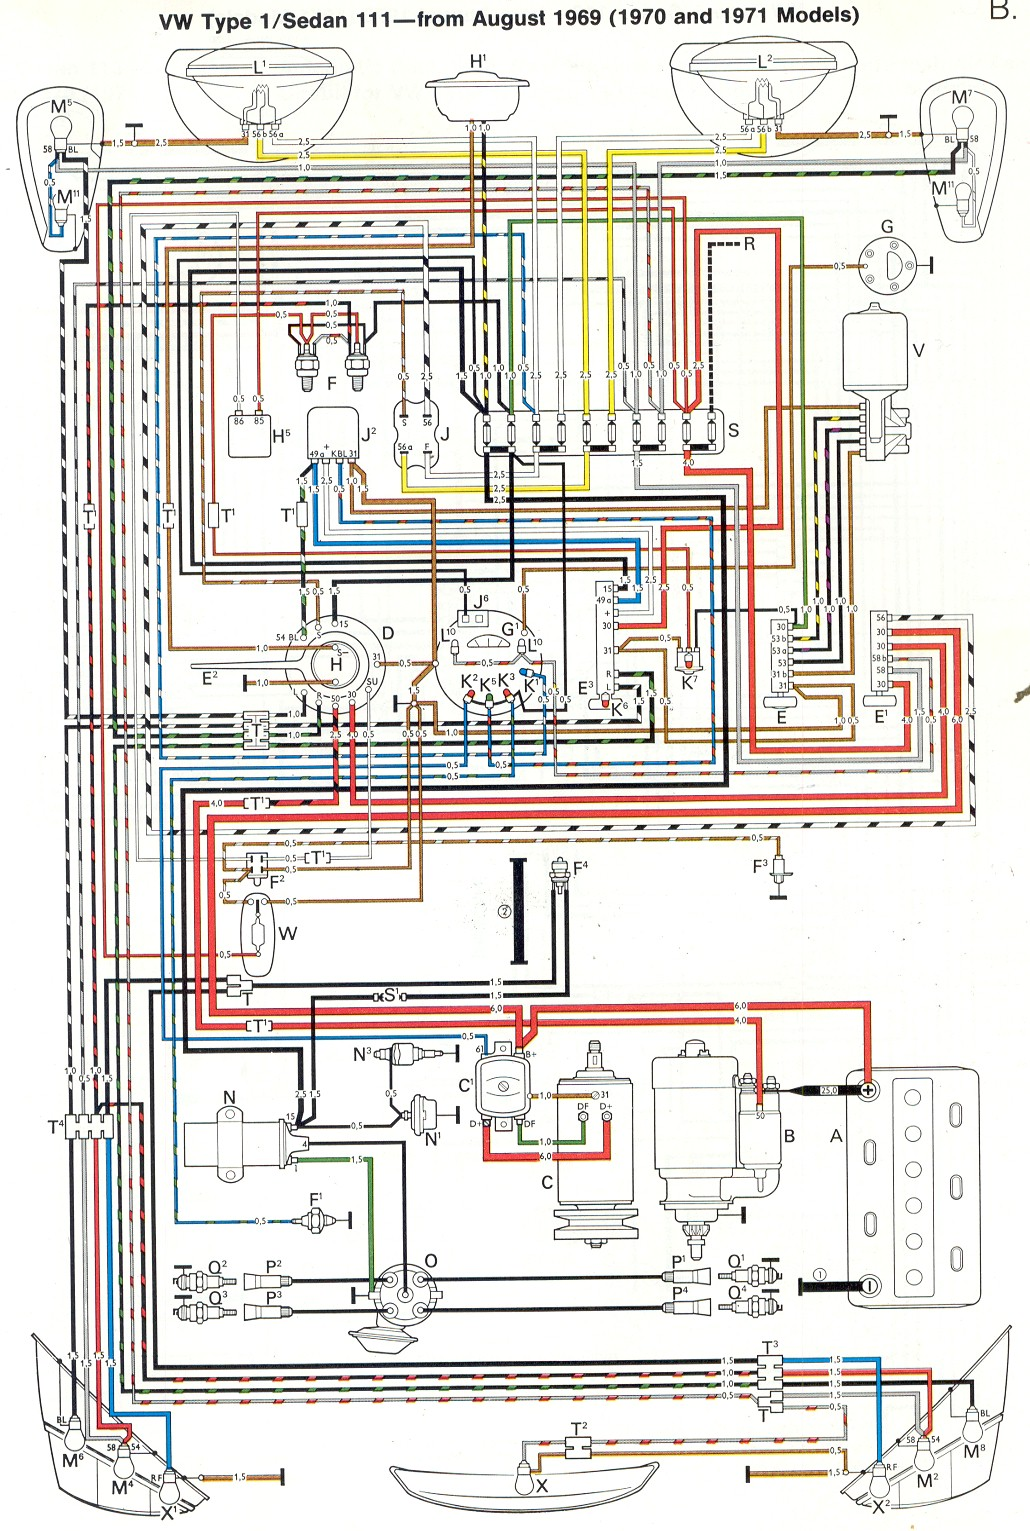 Vw Bug Distributor Wiring Modern Design Of Diagram Electronic Ignition 69 Wire Schematic Simple Rh 62 Mara Cujas De Coil